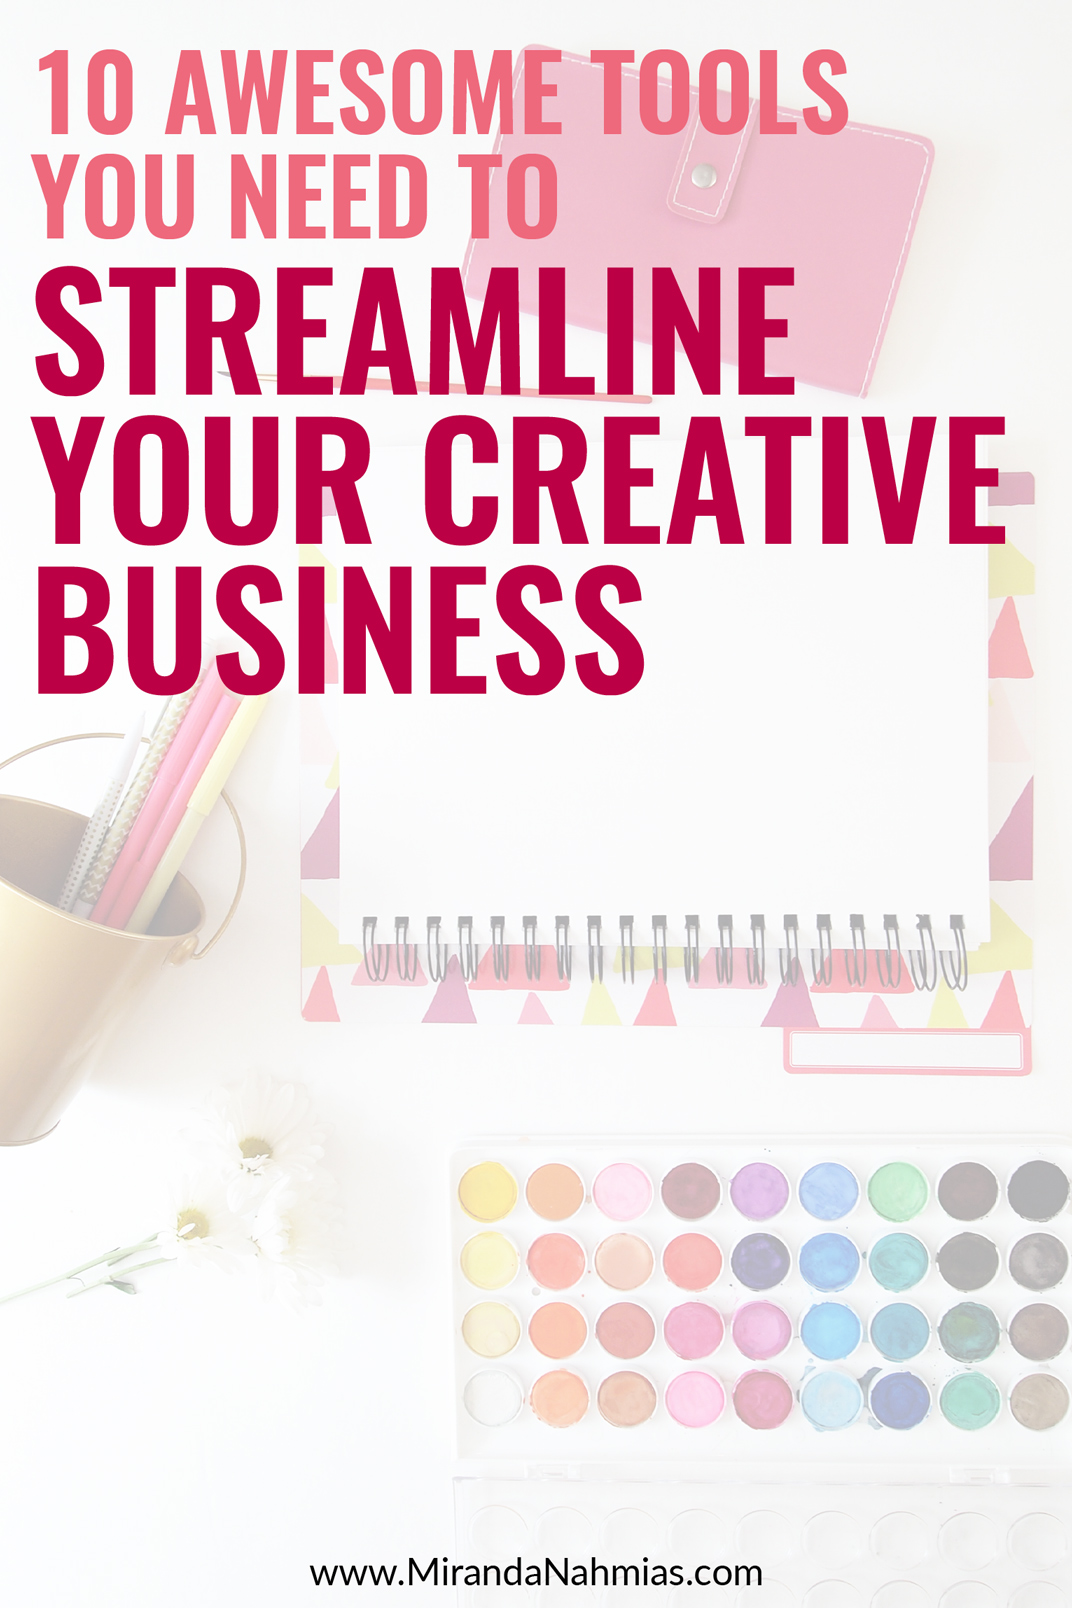 10 Awesome Tools to Streamline Your Creative Business // Miranda Nahmias